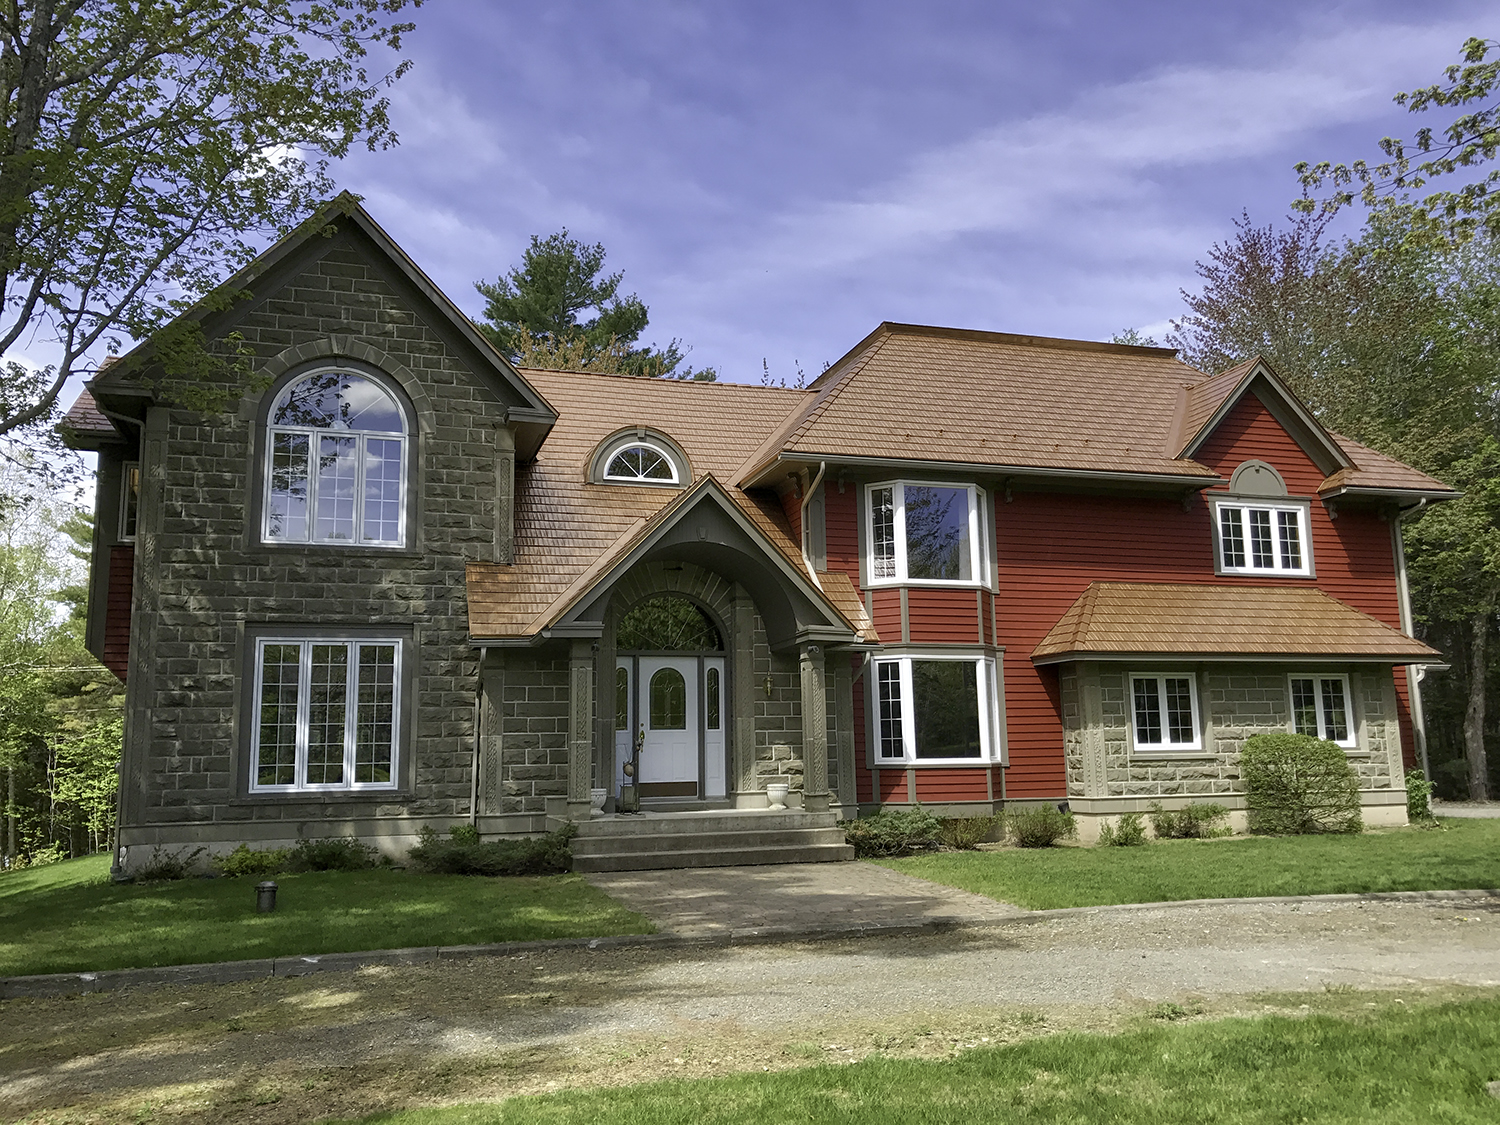 NBMP-16-033-Hanwell-NB-Canada-Aged-Copper-Interlock-Cedar-Shingle-Roof-03